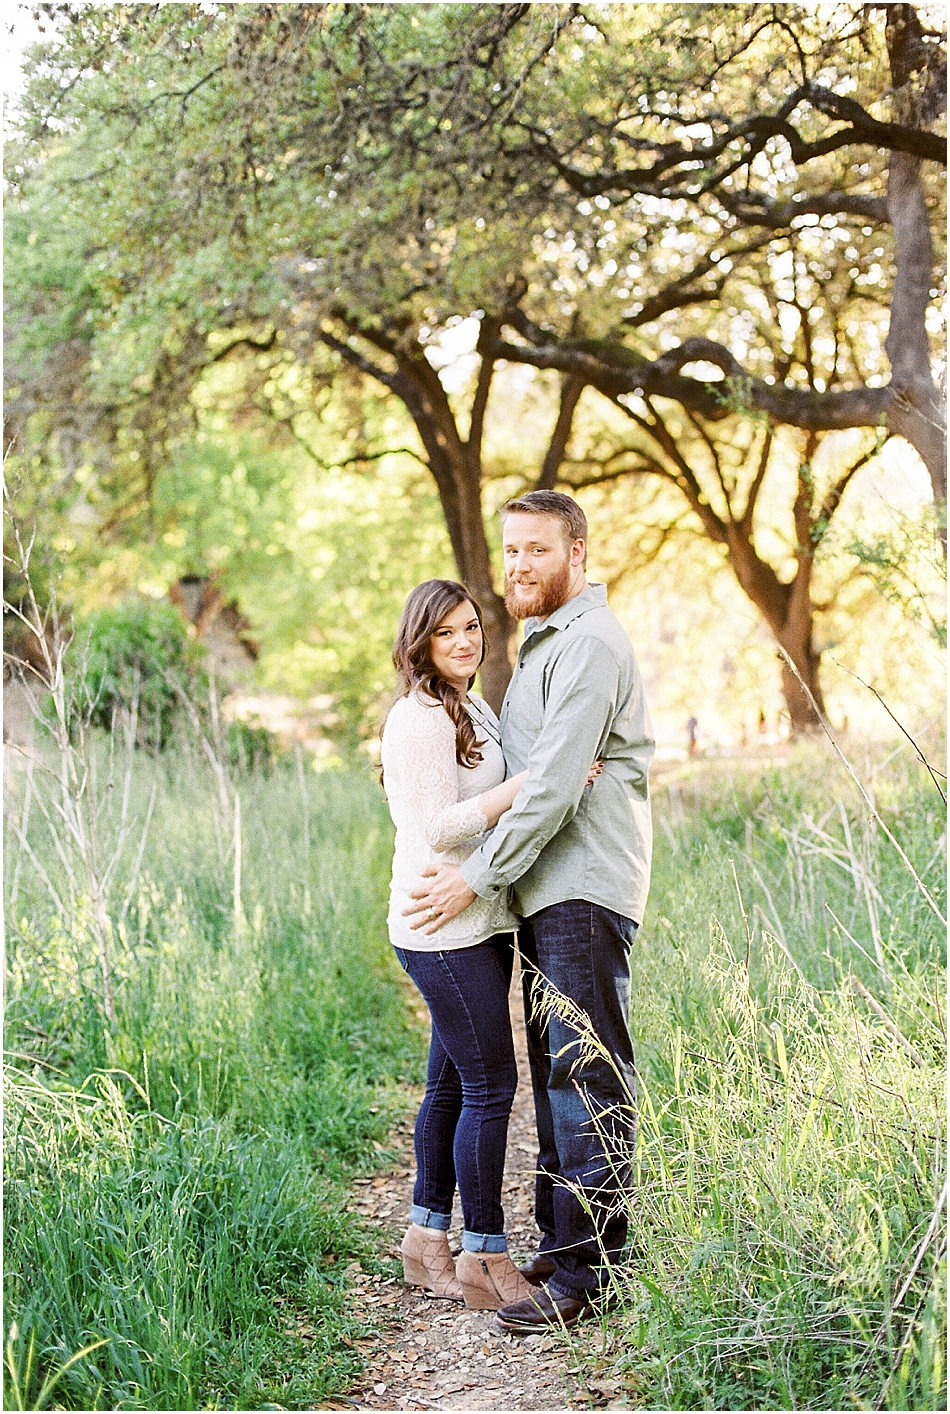 Brooke + Nick | Fine Art Creek Side Engagement | Film | Emilie Anne Photography-23.jpg